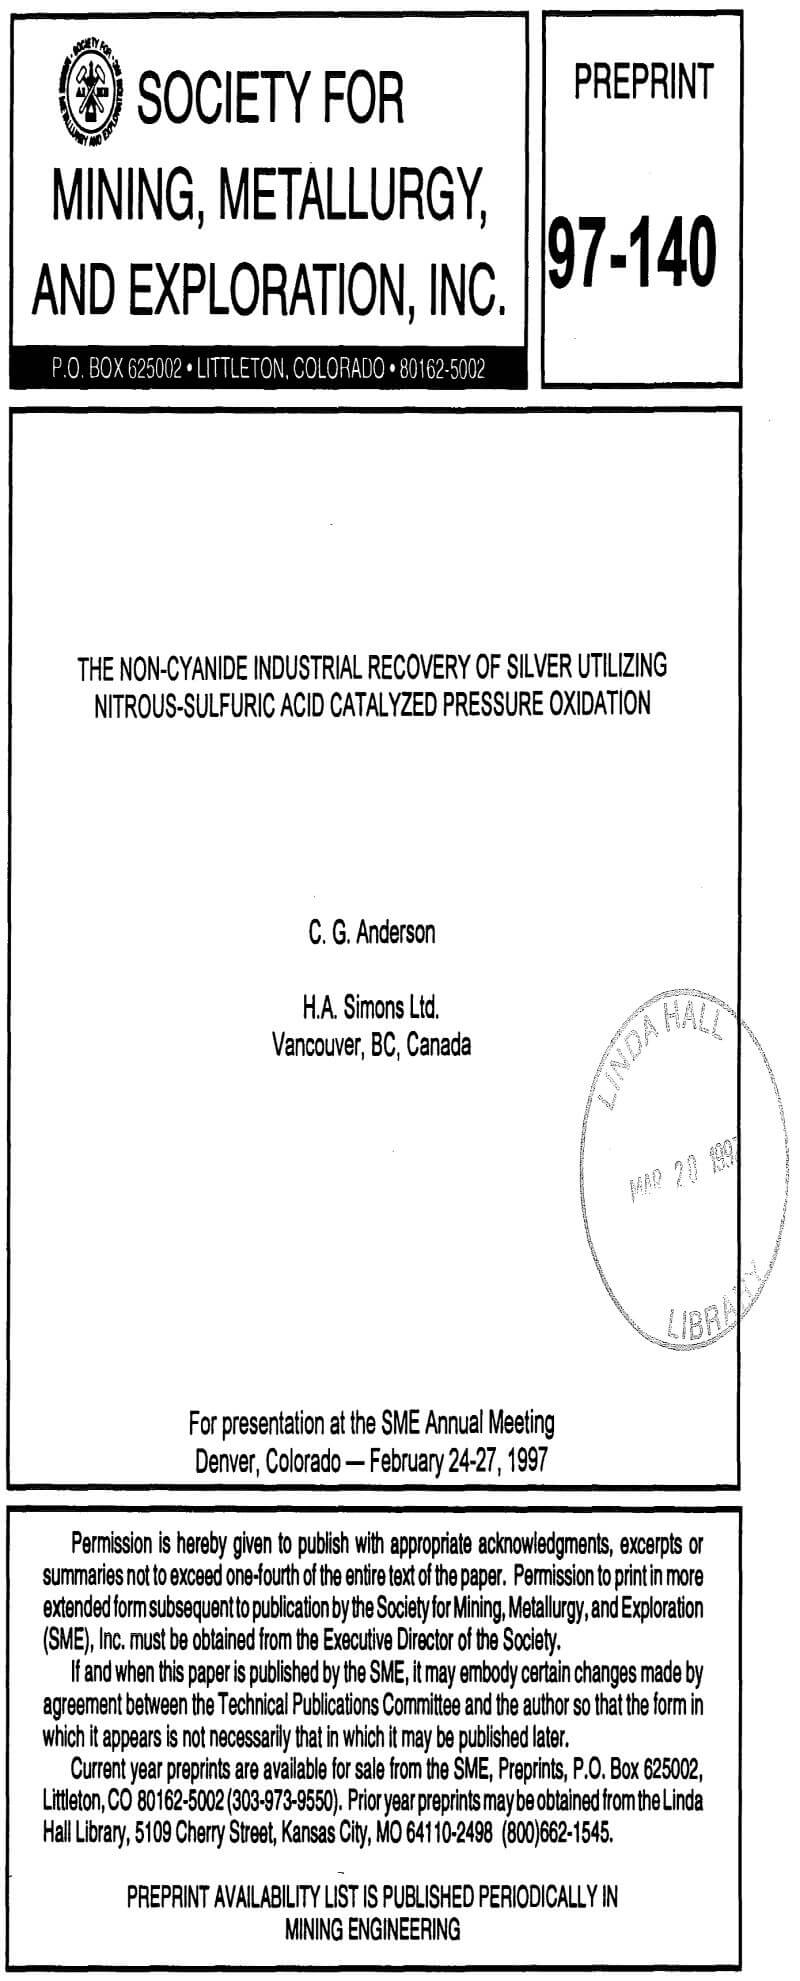 the non-cyanide industrial recovery of silver utilizing nitrous-sulfuric acid catalyzed pressure oxidation